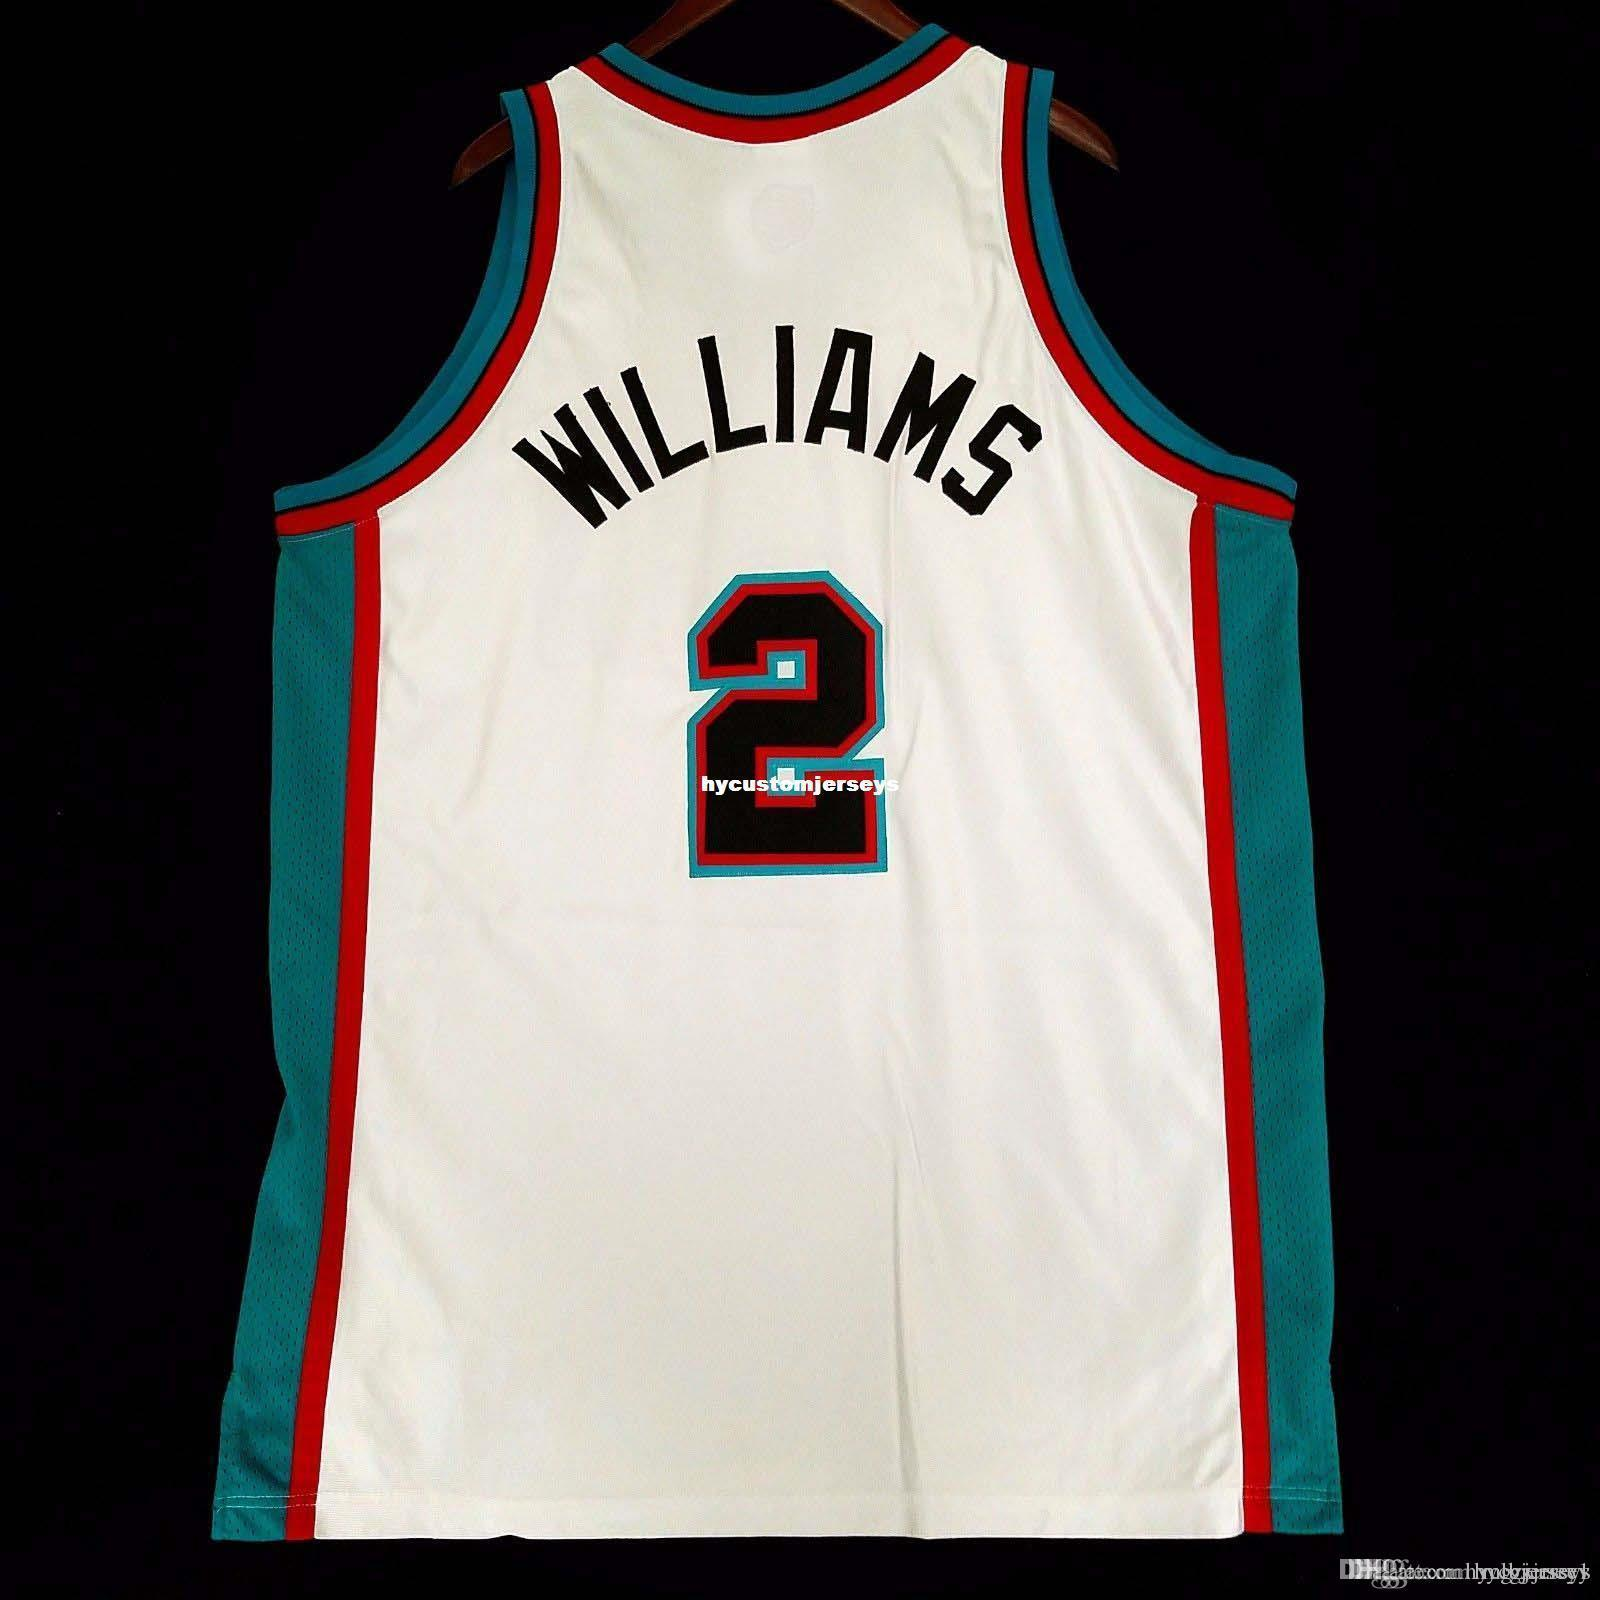 100% cosido # 2 Jason Williams Tamaño Rbk mayor Jersey Hombres Chaleco Blanco XS-6XL cosido jerseys de baloncesto NCAA